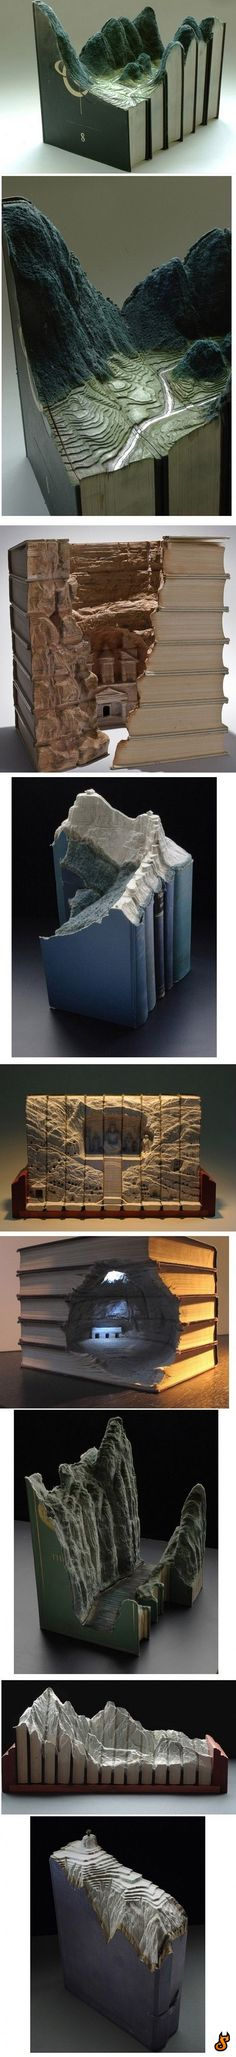 More book art!